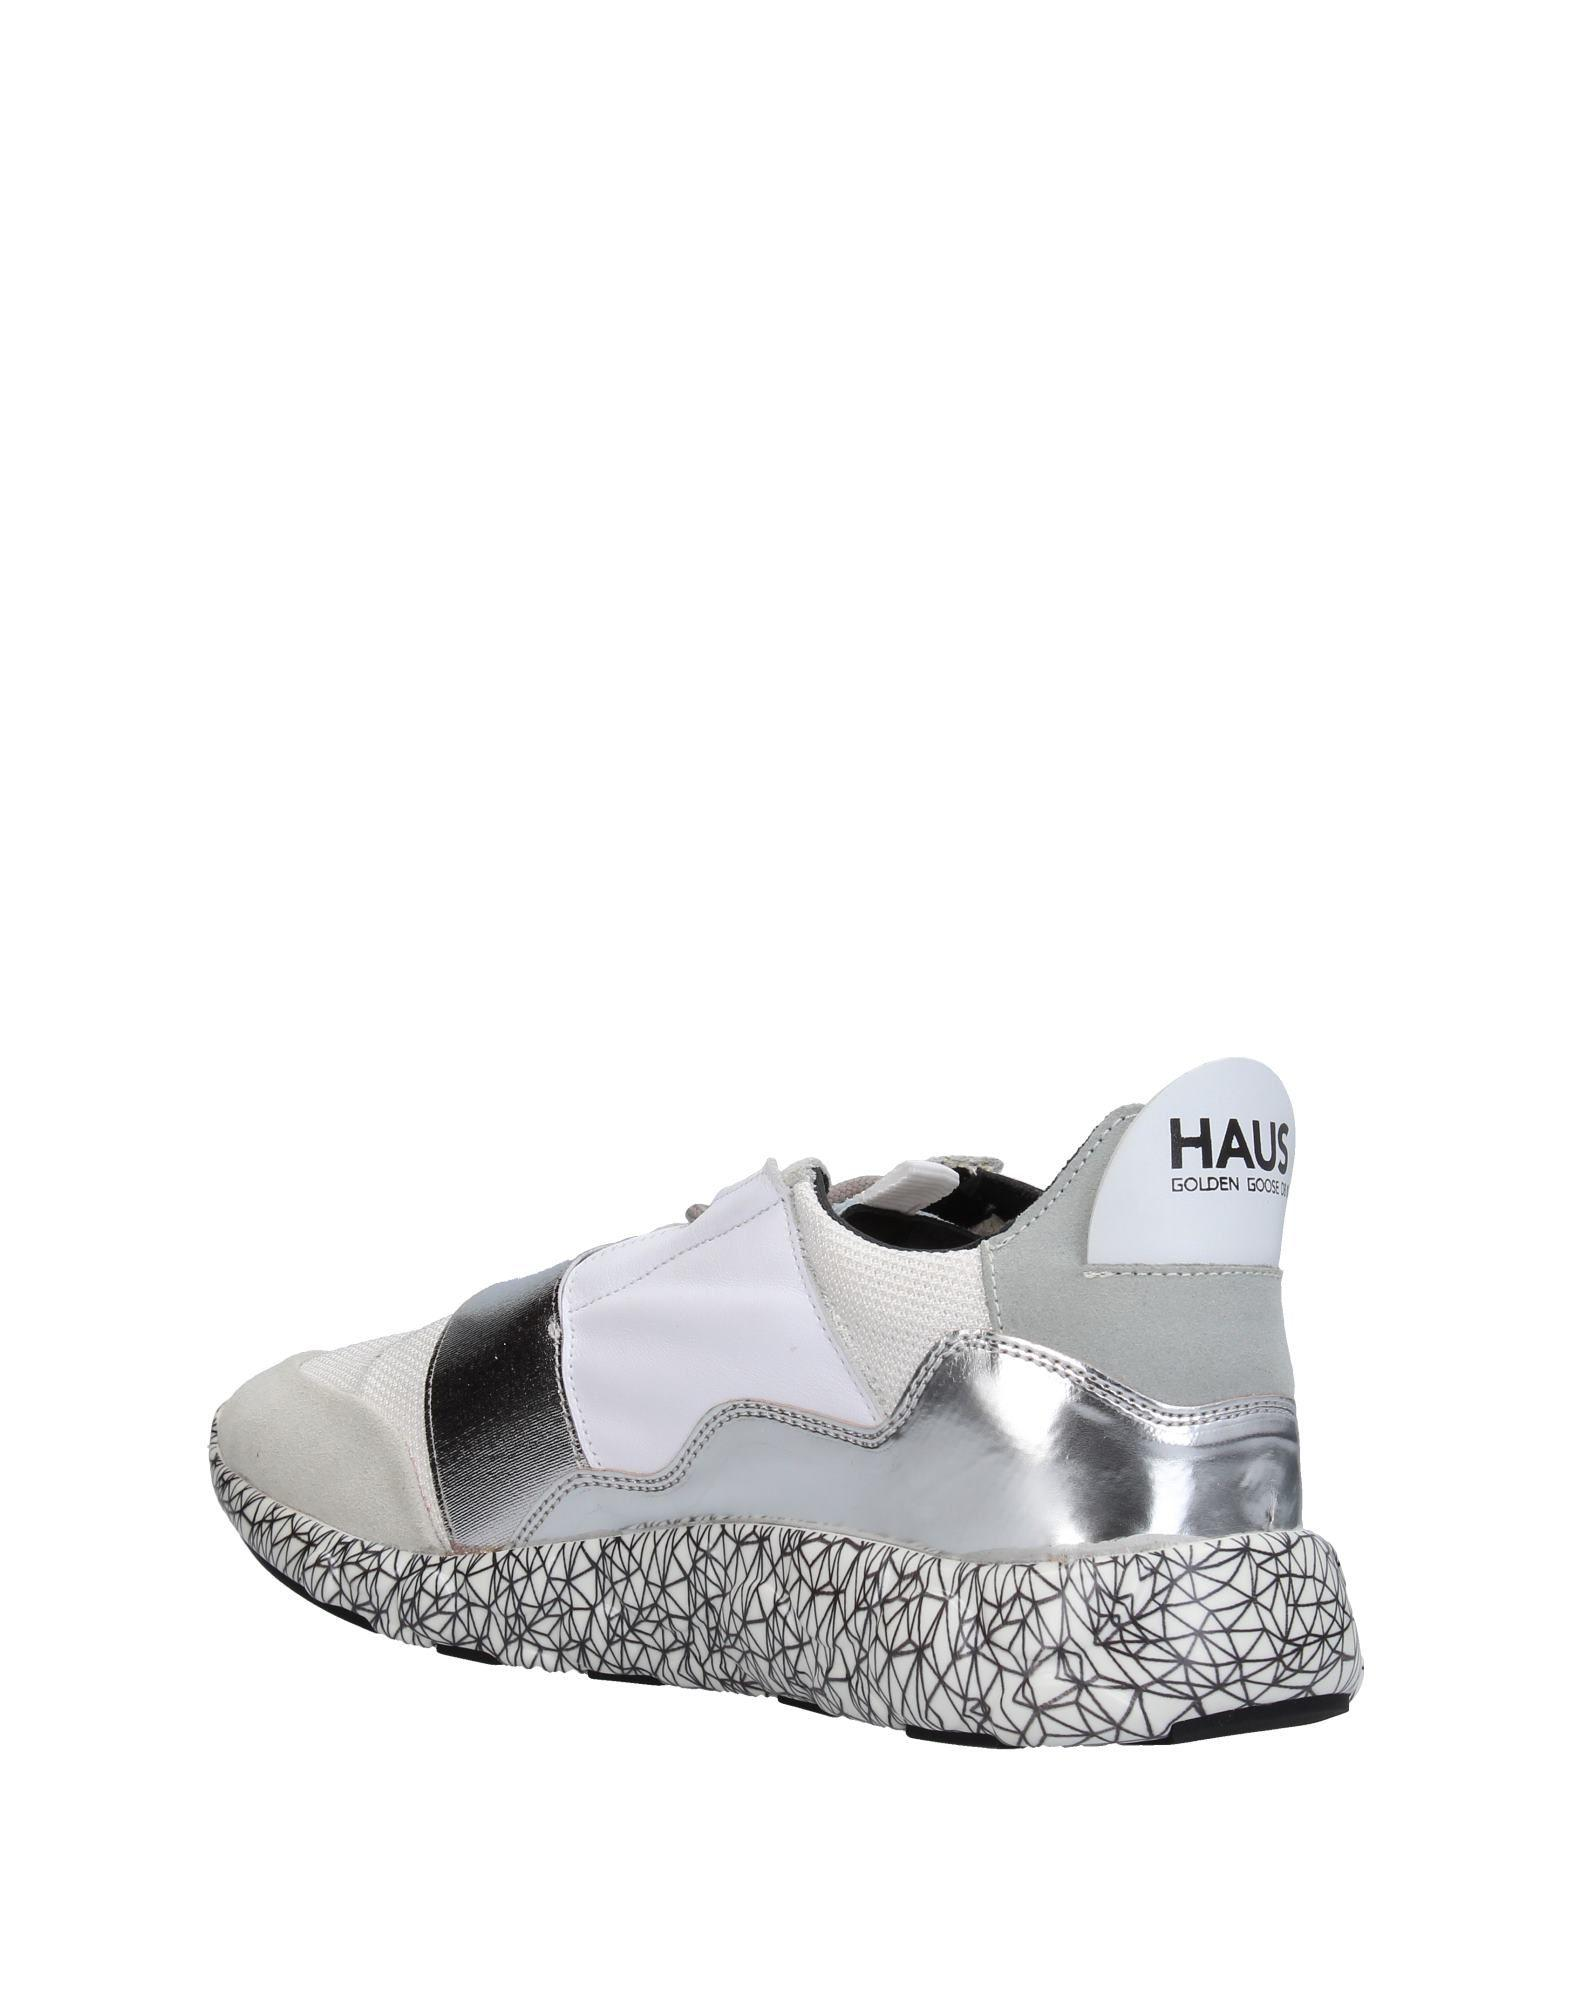 Haus By Golden Goose Deluxe Brand Leather Low-tops & Sneakers in White